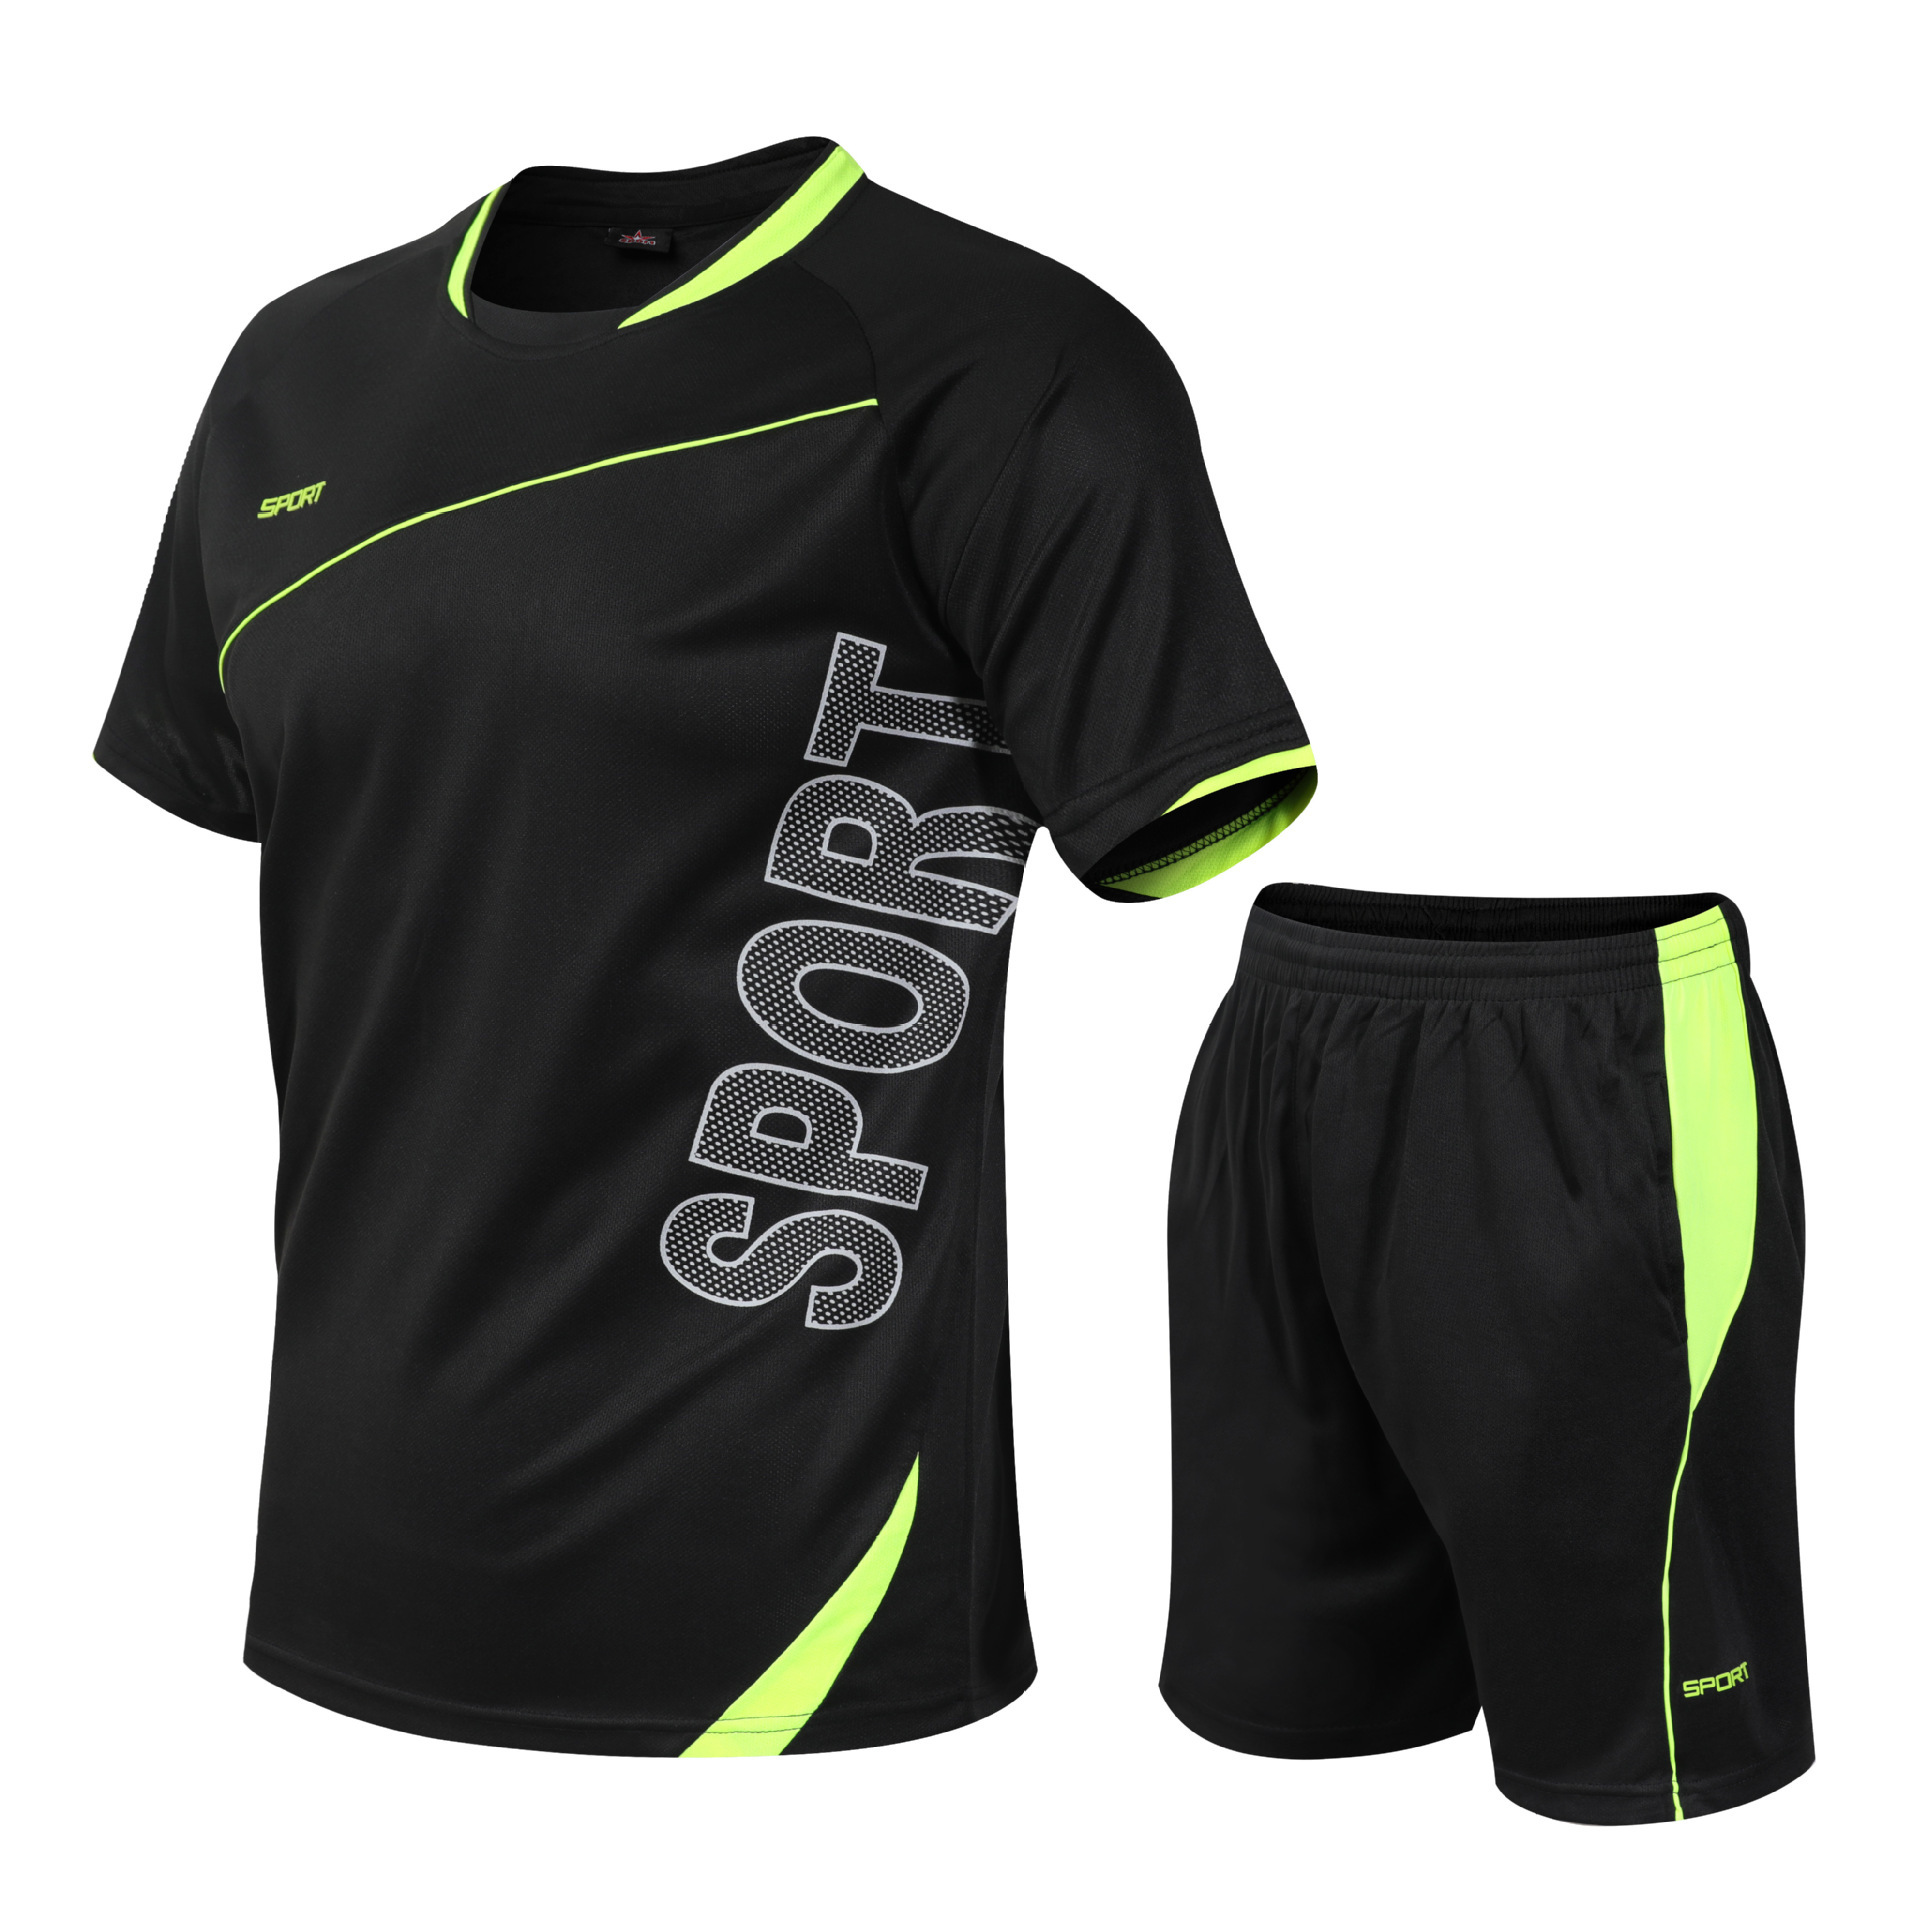 Sports Set Clothes Casual Men's Short-sleeved T-shirt Short Shorts Fitness Plus-sized Men's Wear Quick Drying Clothes Fashion